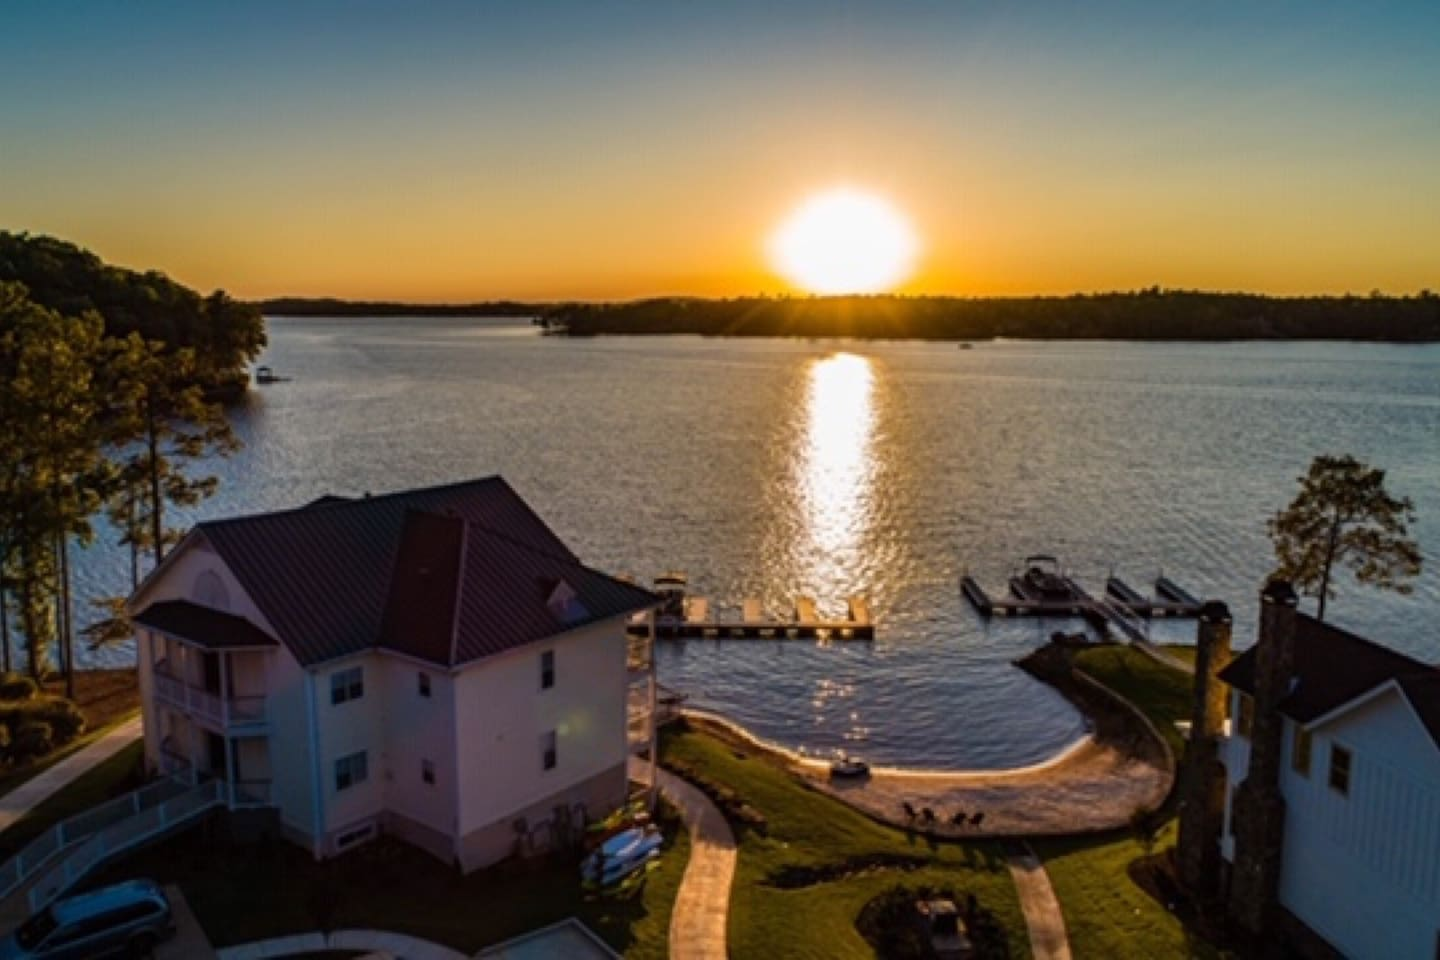 Resort-style complex with Penthouse condo overlooking private pool, lake, beach, pier, and boat docks.  Spectacular sunsets from your 2 balconies.